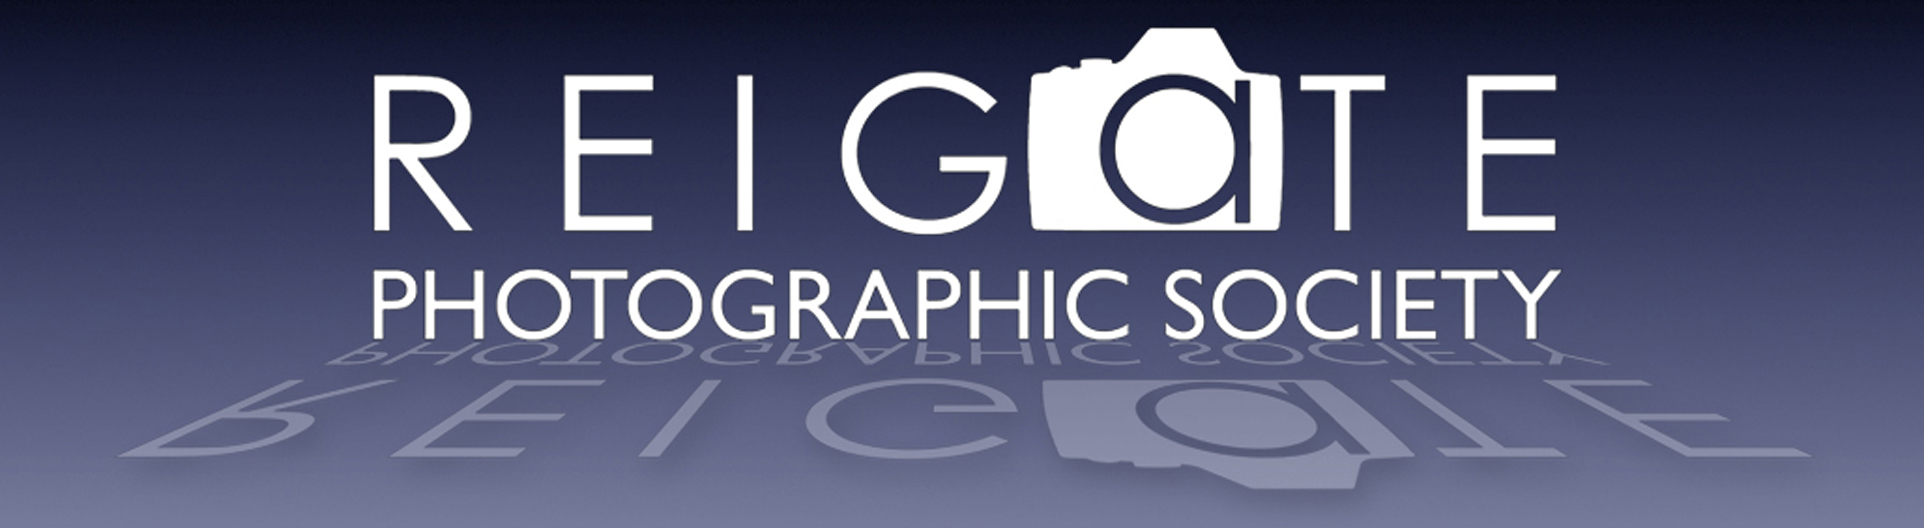 Reigate Photographic Society